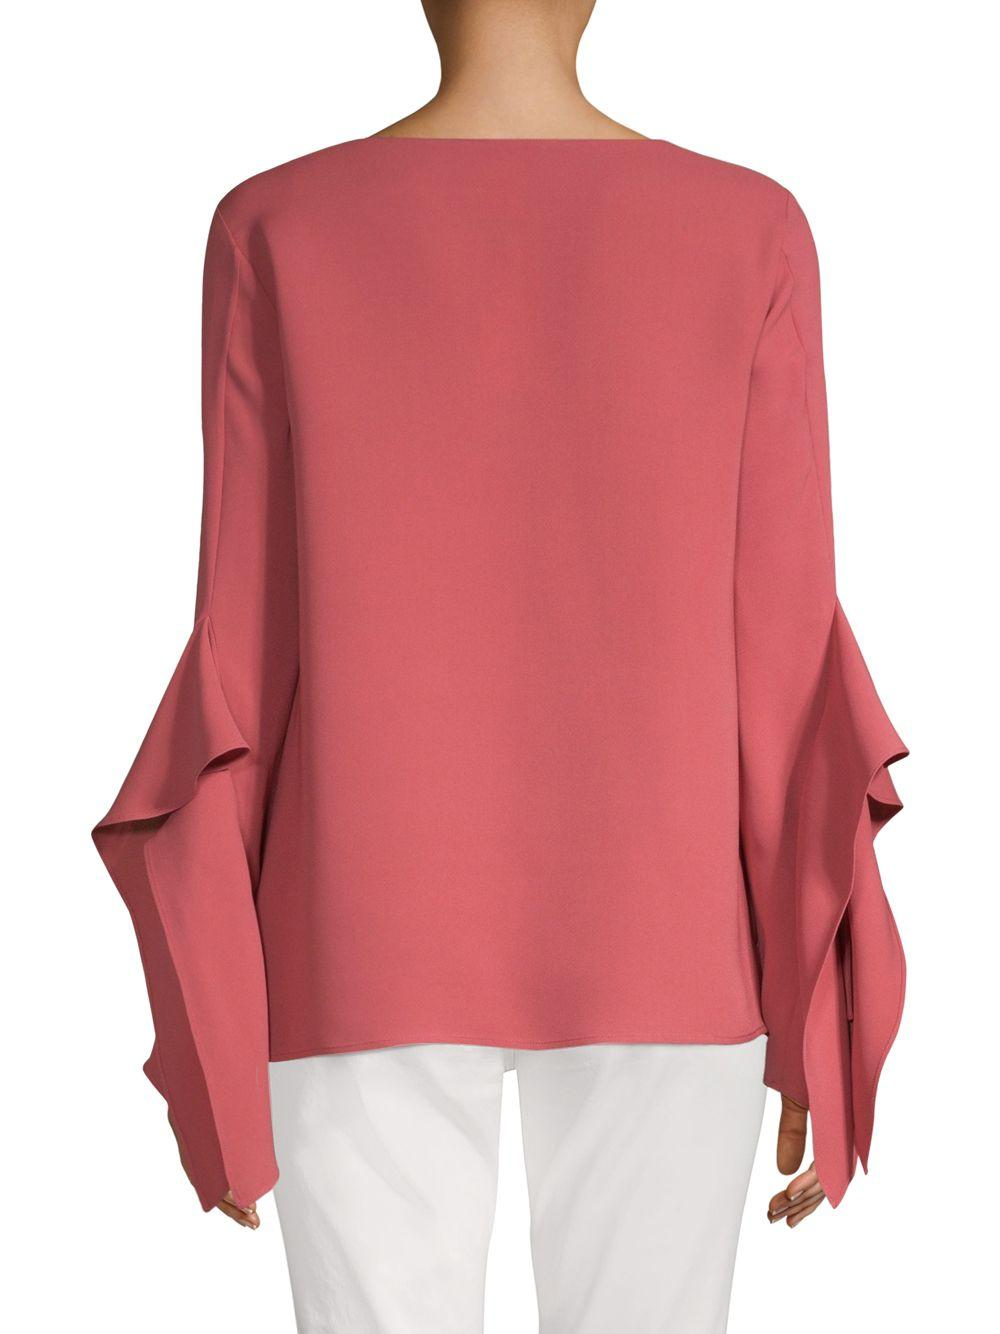 d412ad3338c567 Lafayette 148 New York Catharina Silk Blouse in Pink - Lyst